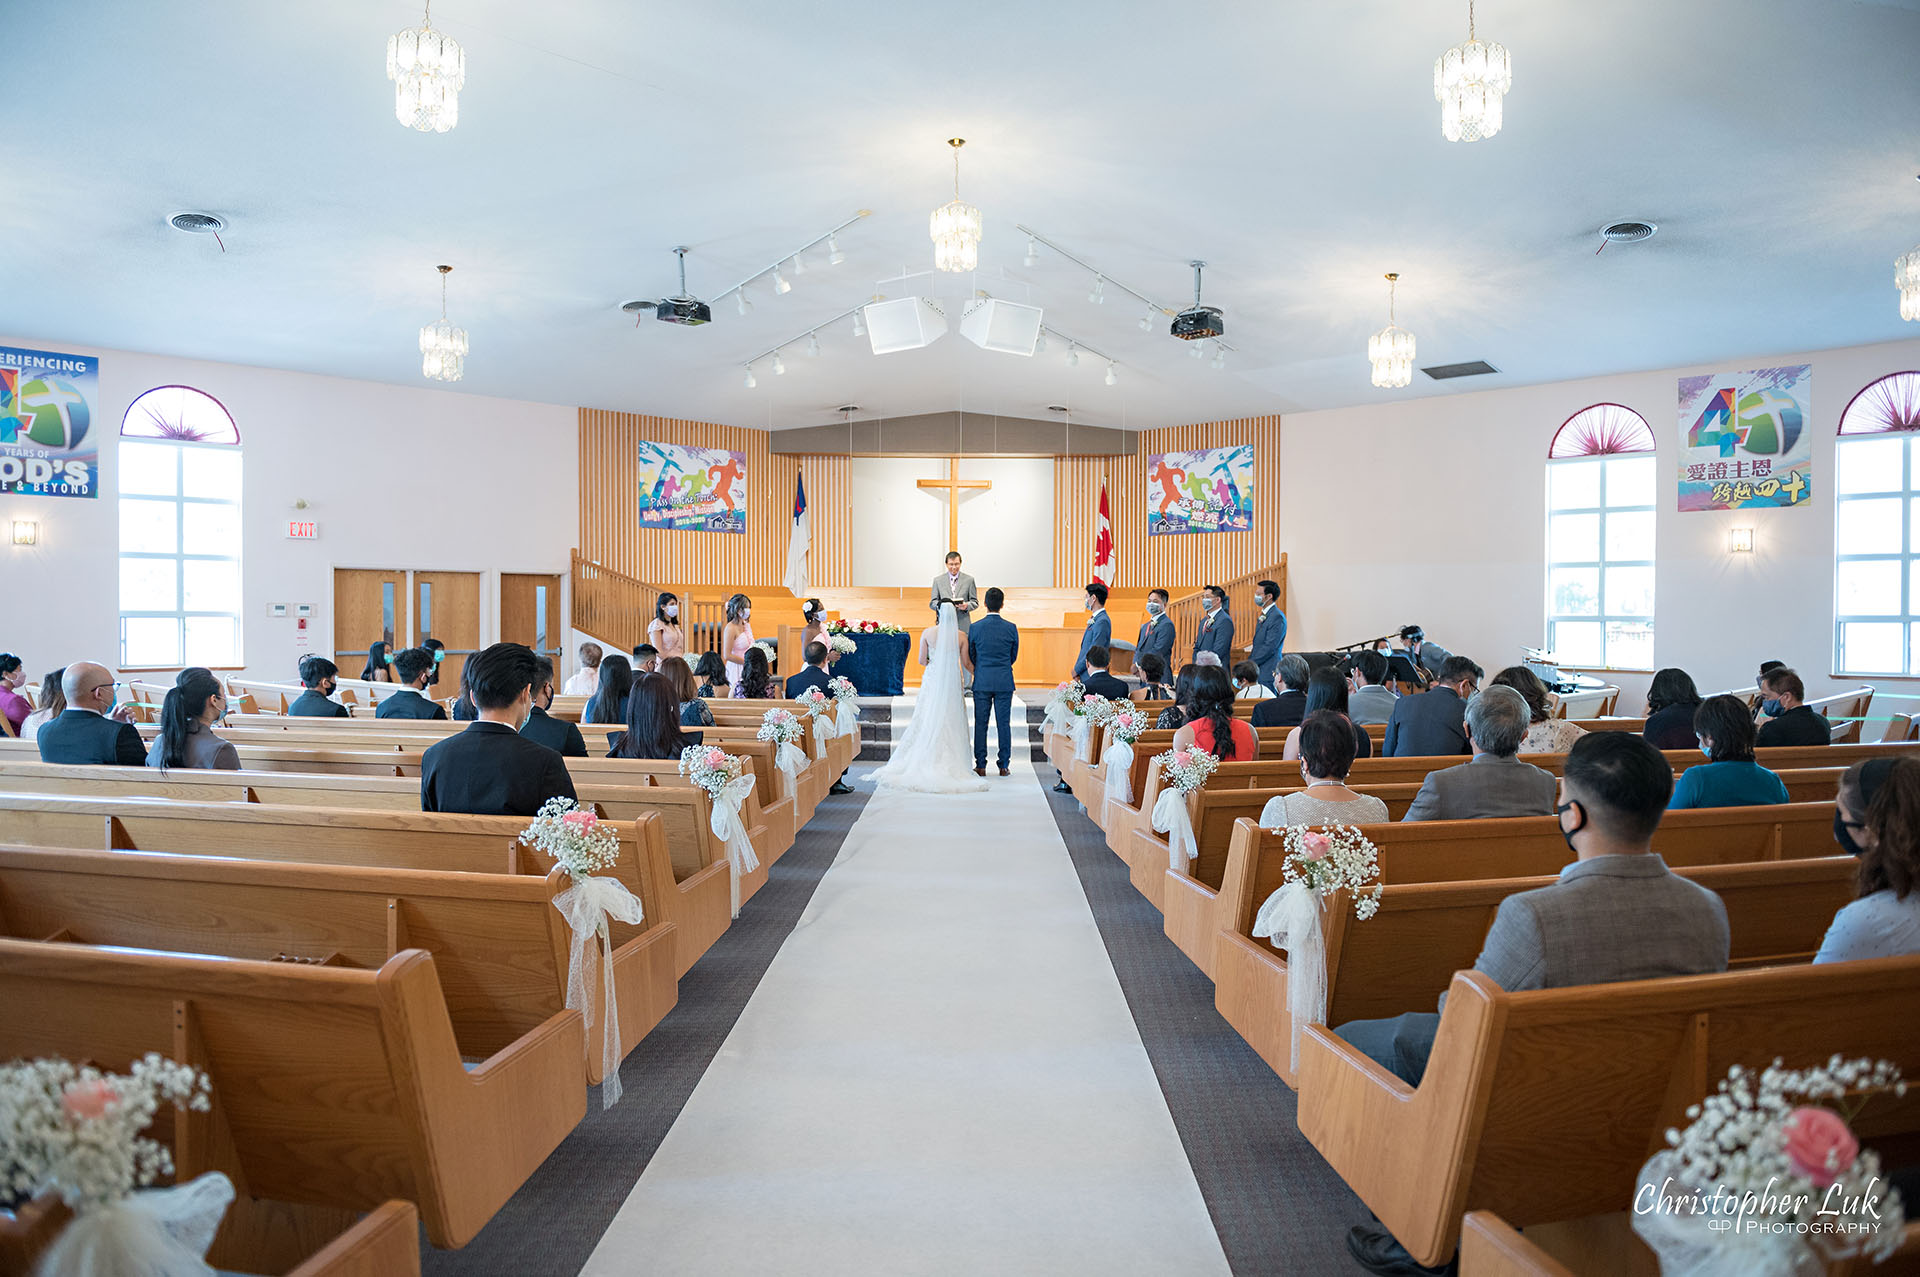 Christopher Luk Toronto Wedding Photographer Bridle Trail Baptist Church Unionville Main Street Crystal Fountain Event Venue Ceremony Location Interior Bride Groom Centre Aisle Sanctuary Covid Covid19 Coronavirus Physical Distancing Measures